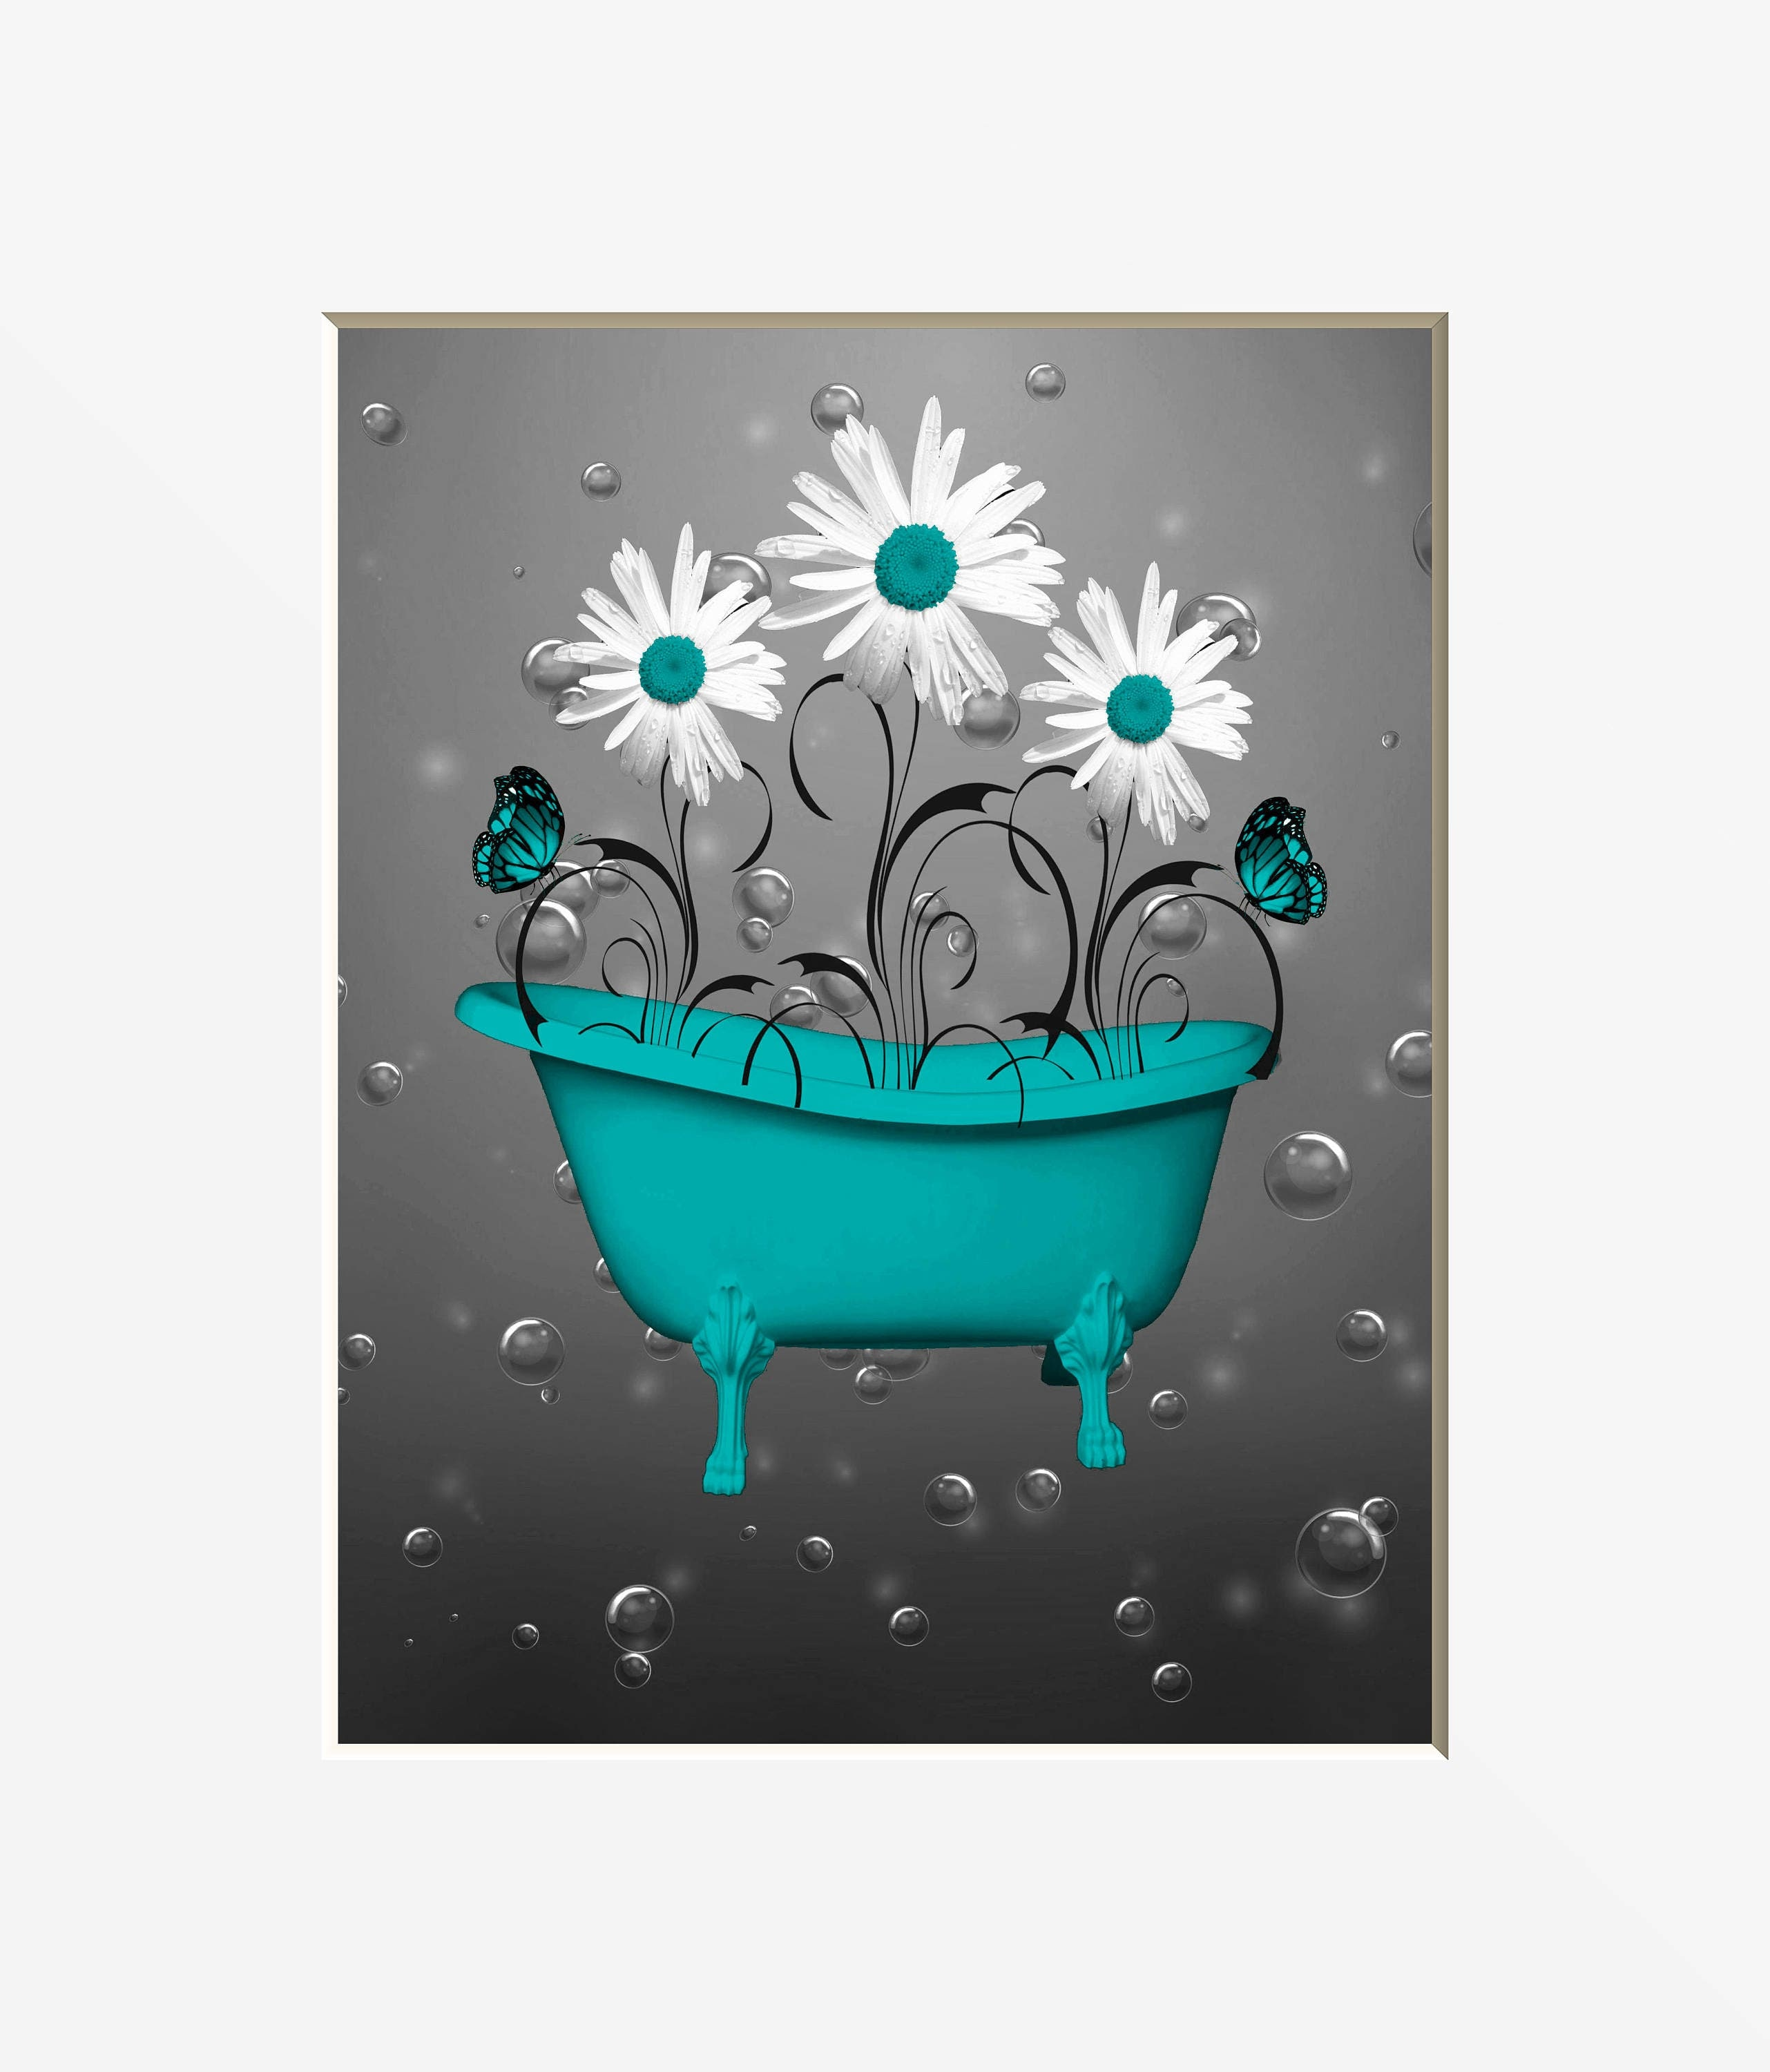 Teal gray wall pictures teal bathroom decor teal daisy for Teal and grey bathroom sets